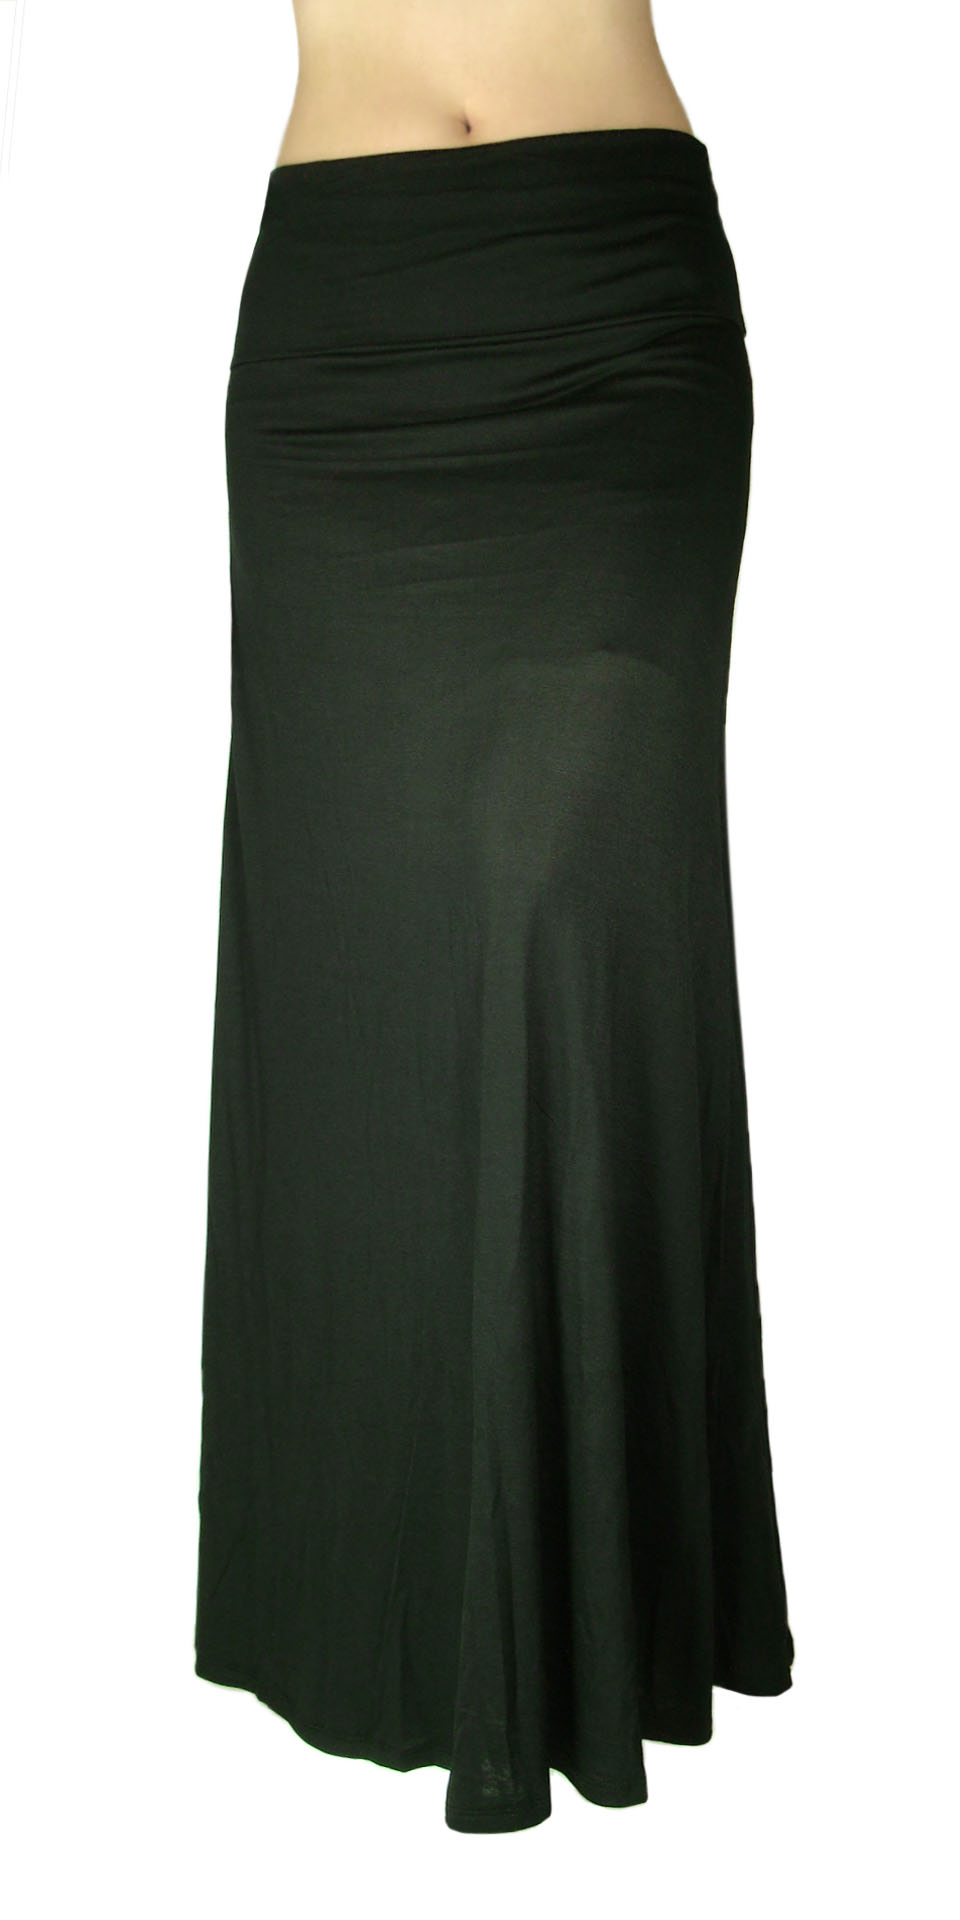 solid maxi skirt waist foldover black color